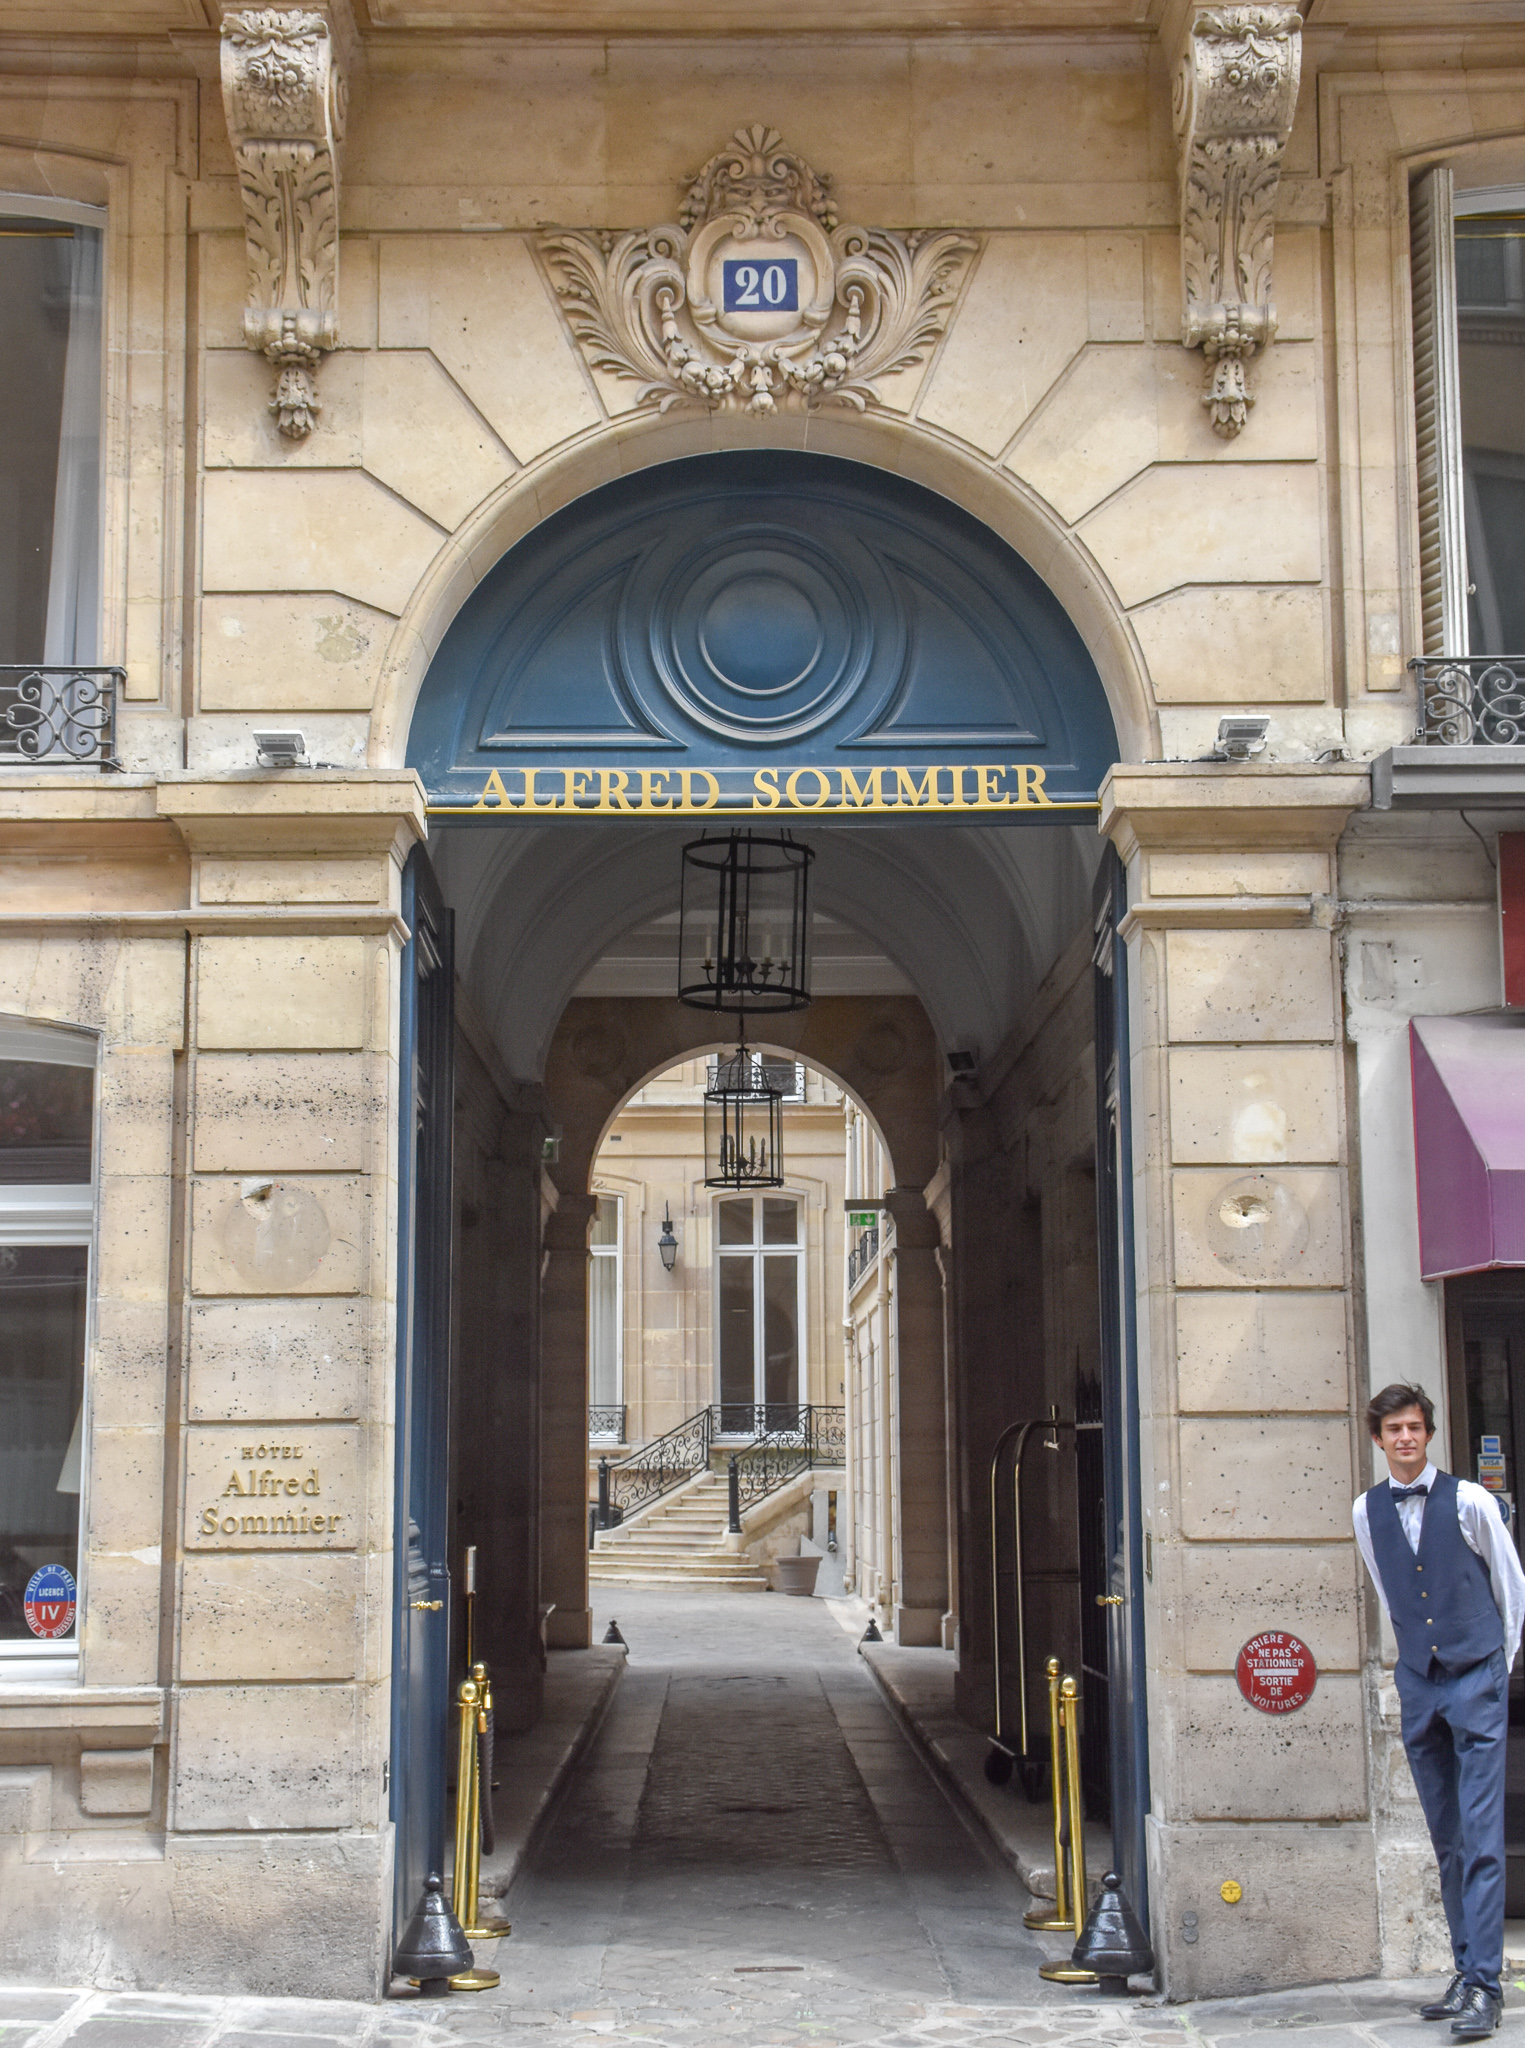 Hotel Alfred Sommier Review A Boutique Luxury Stay In The Heart Of